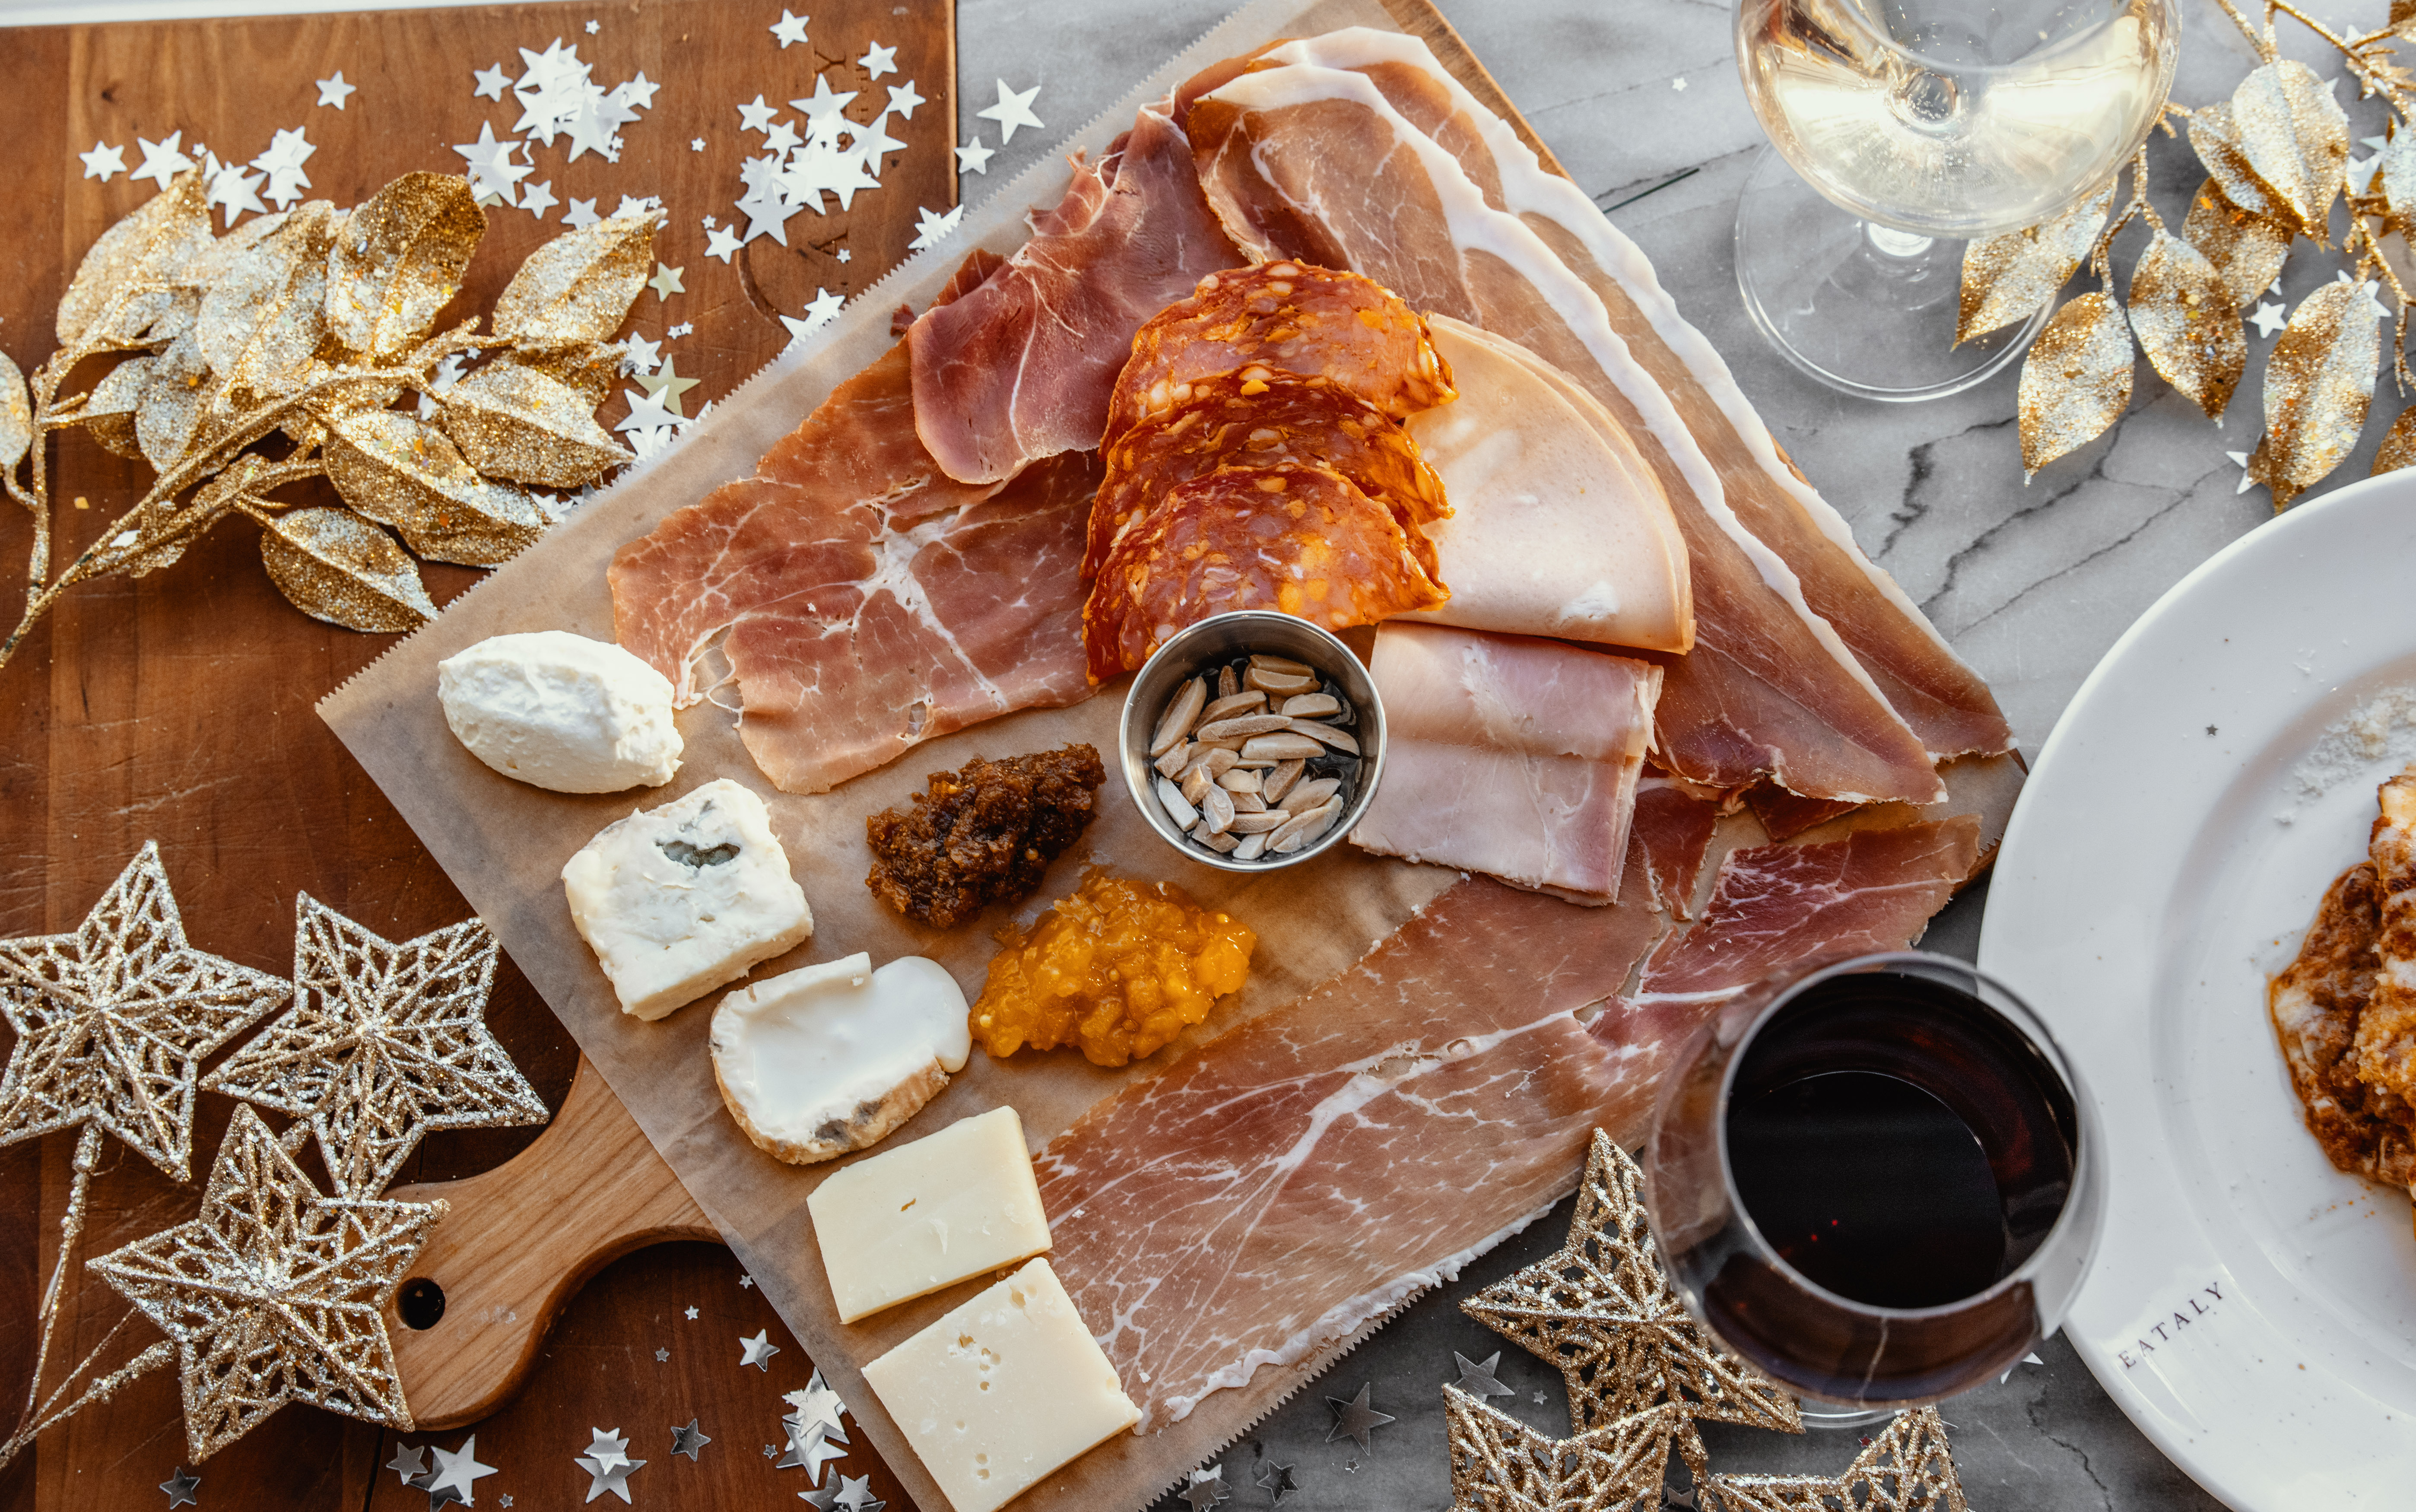 Eataly's New Year's at Home